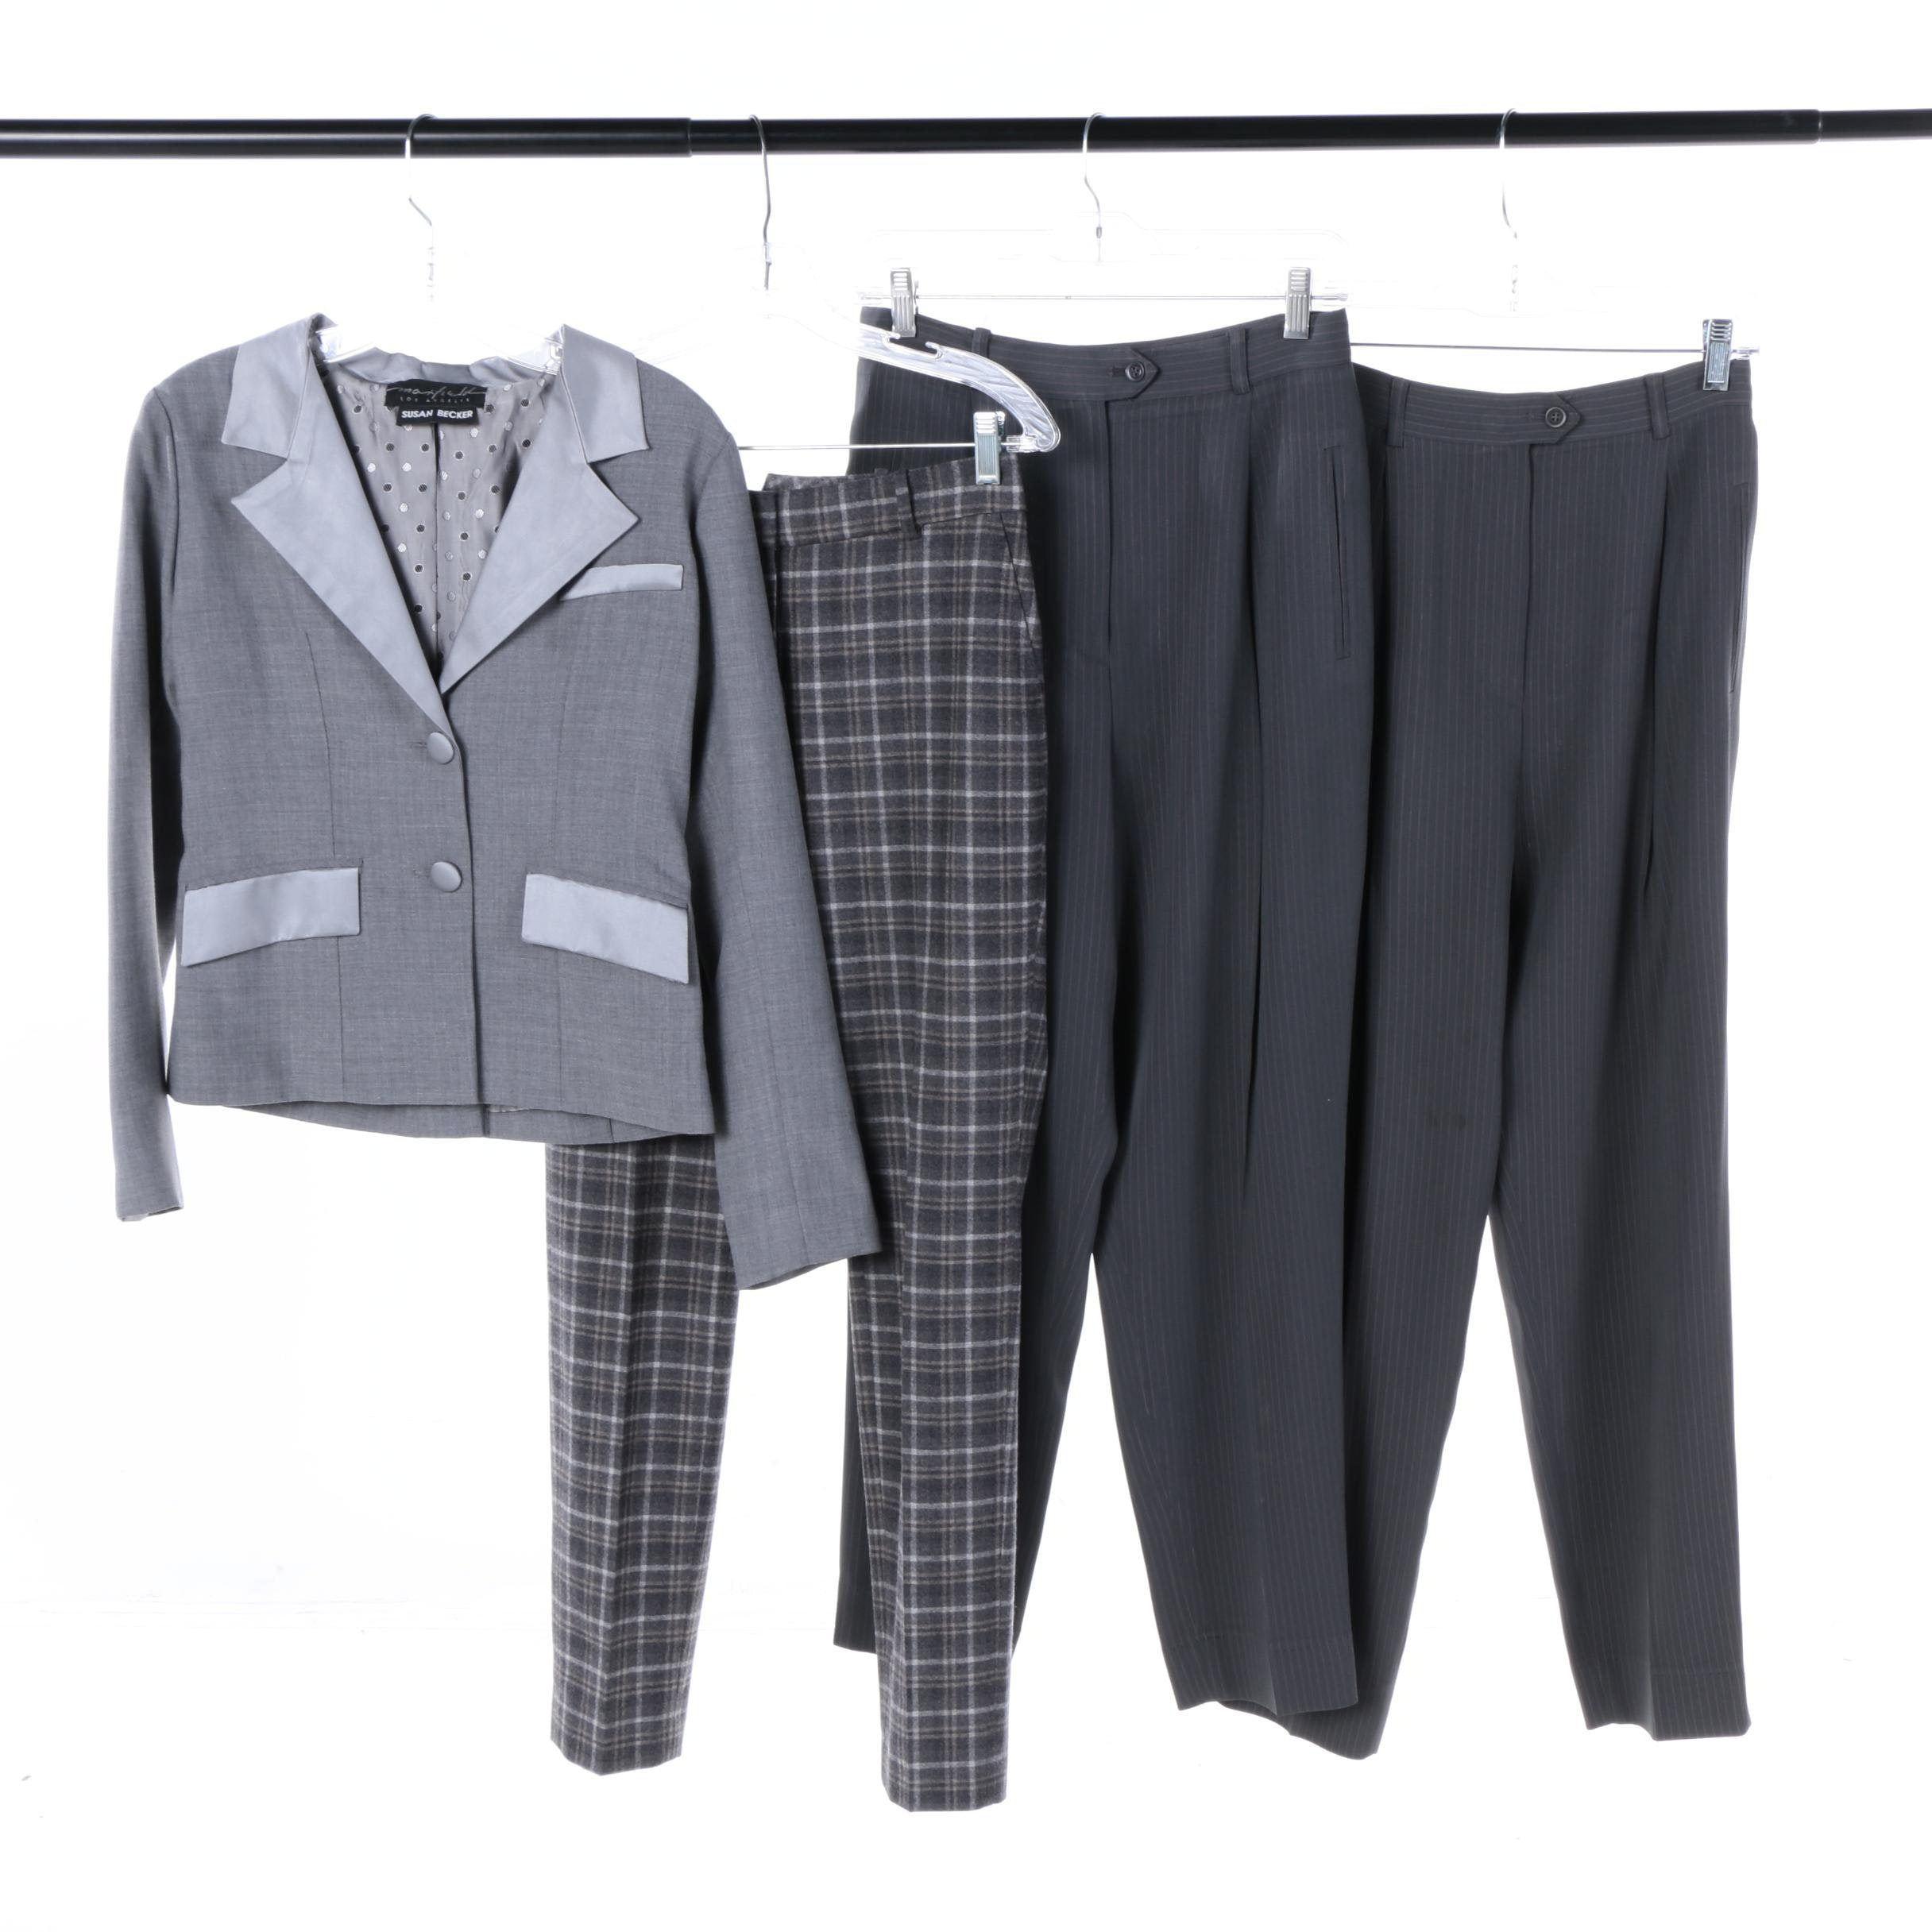 Women's Alex Garfield and Susan Becker Suit Separates Including Plaid Pants